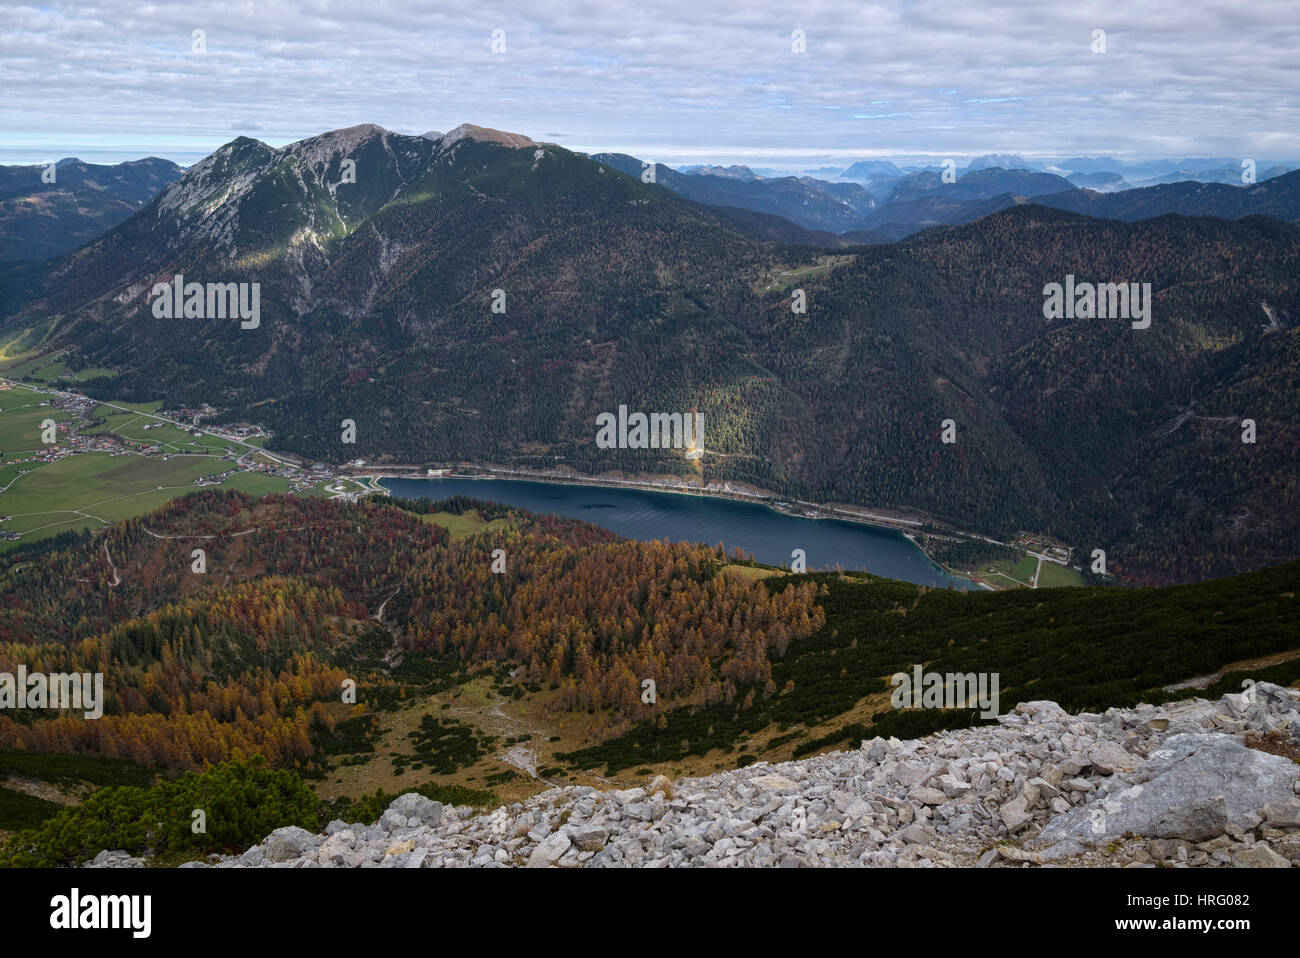 View of Achensee lake from the hiking trail to mountain Seekarspitze in autumn, Tyrol, Austria - Stock Image